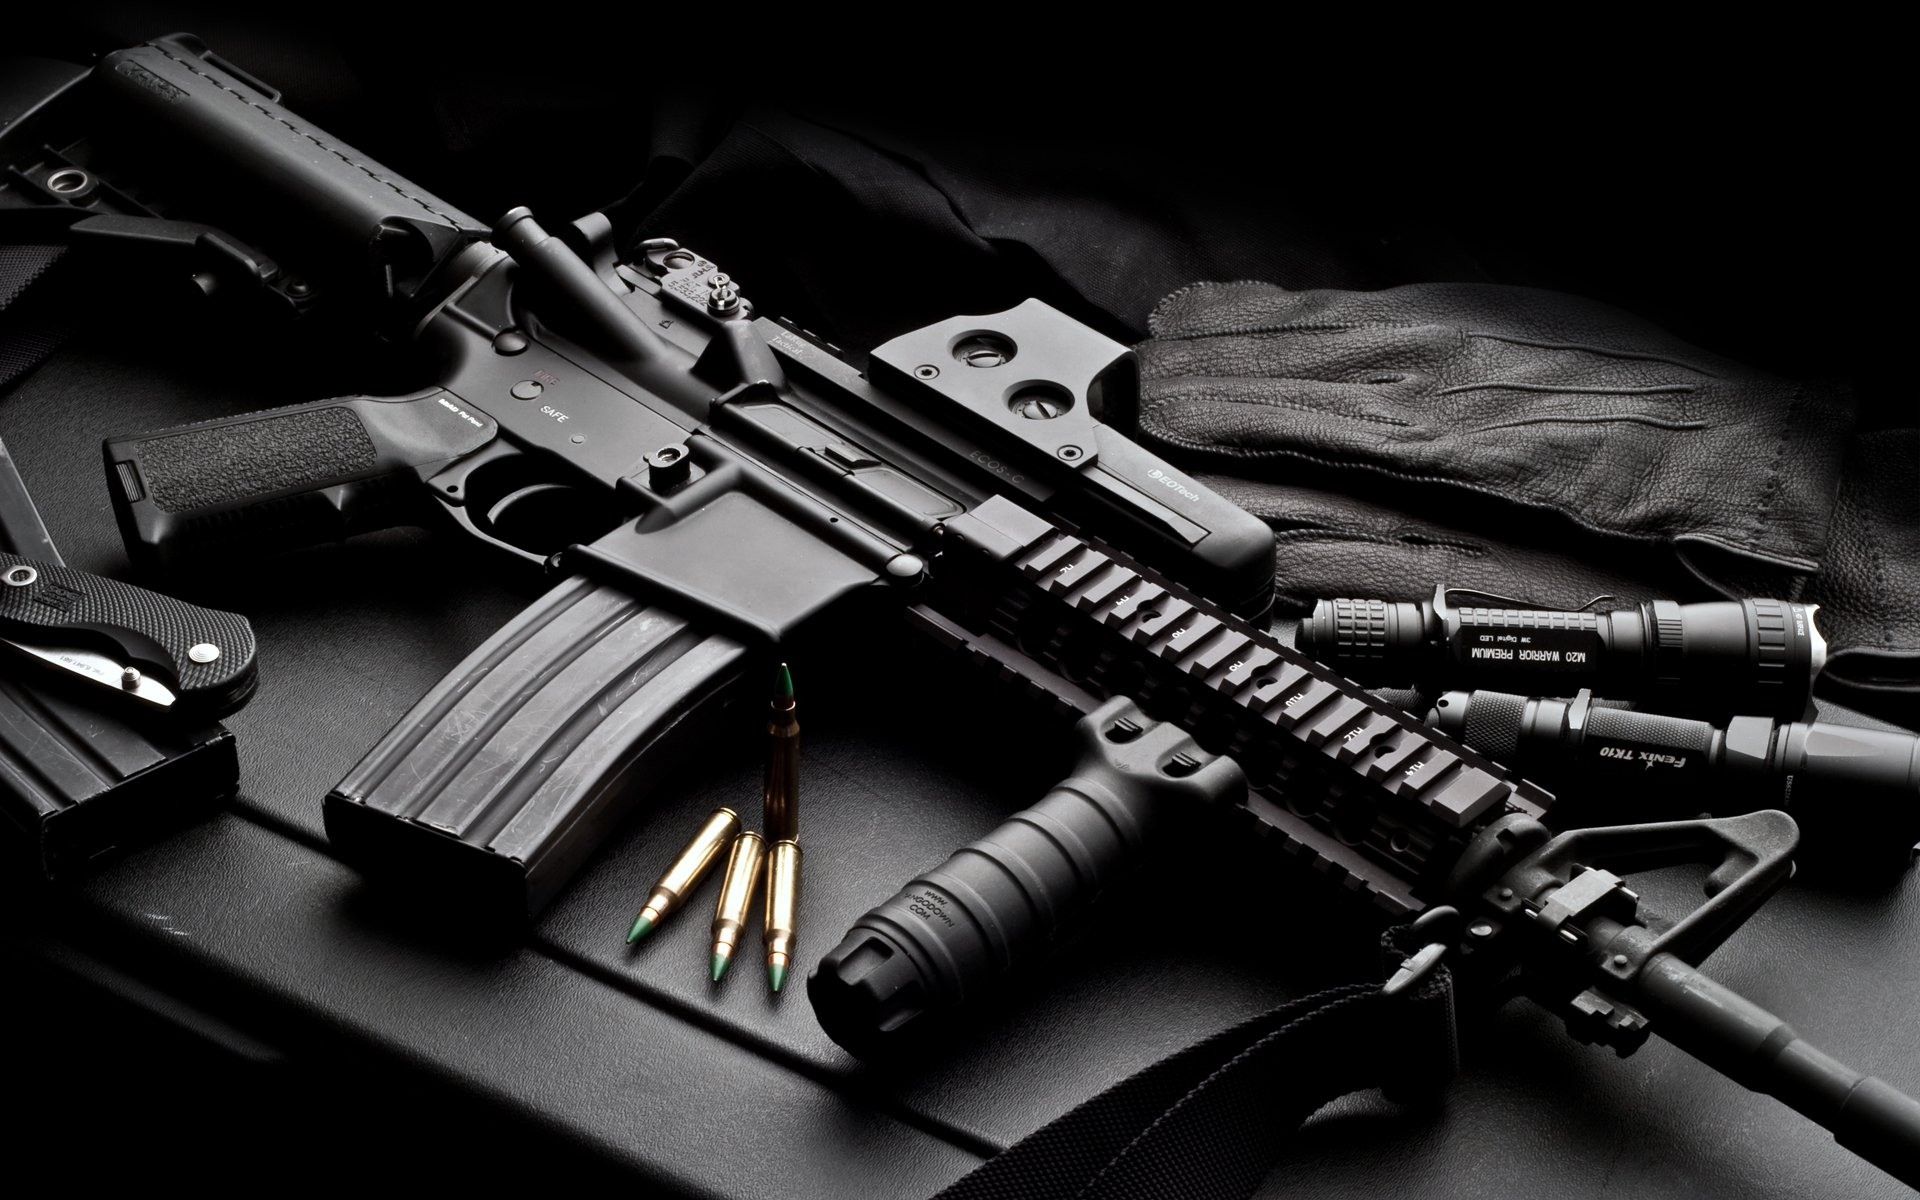 1954 weapons hd wallpapers | background images - wallpaper abyss